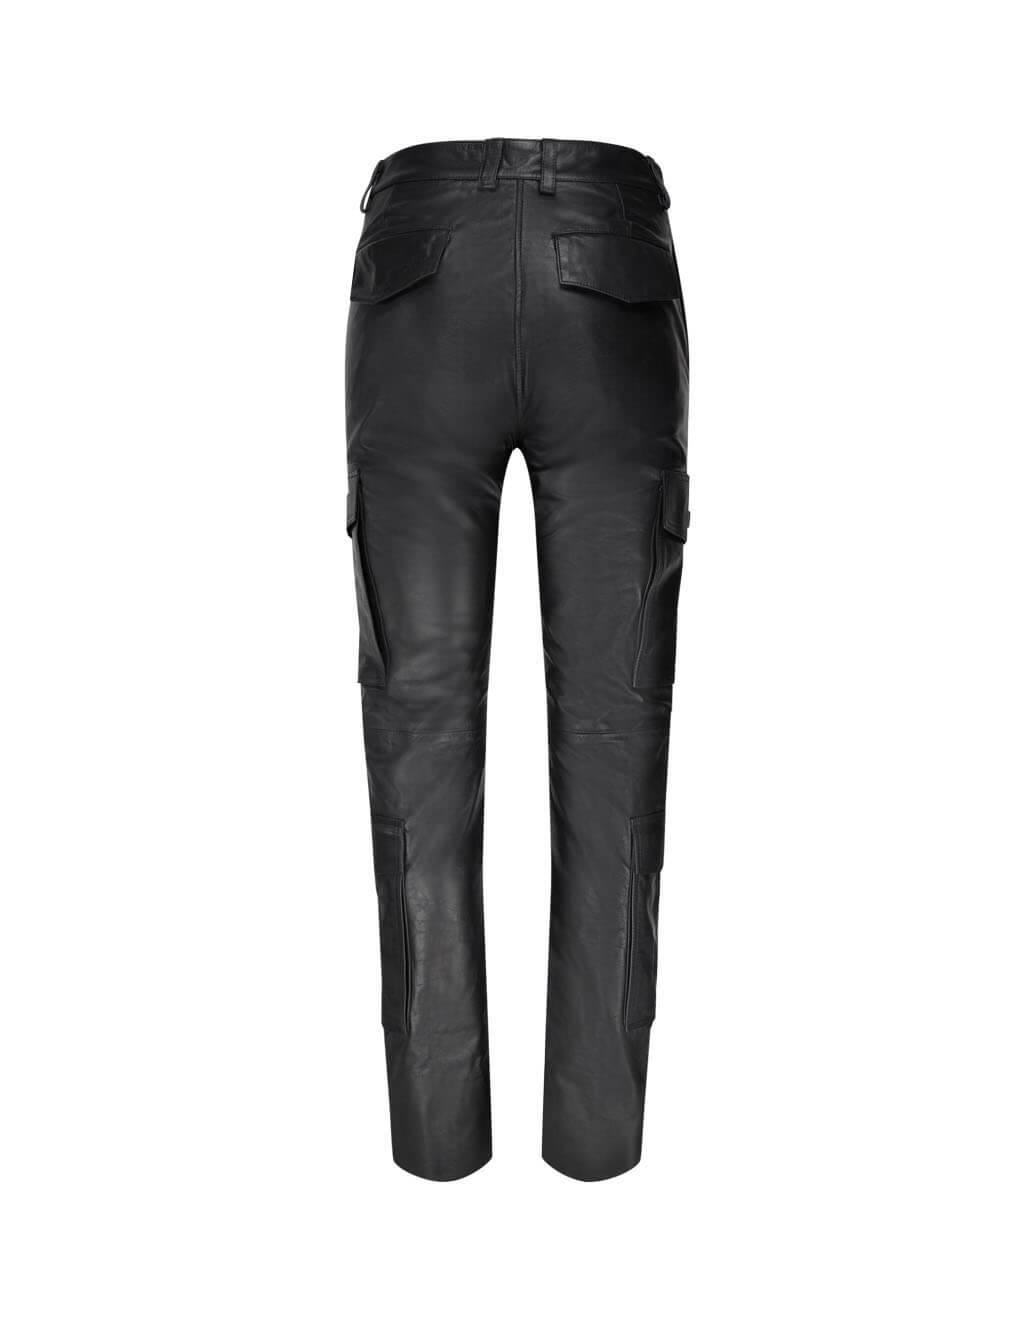 Women's KENZO Leather Cargo Trousers in Black. FA62WPA097AD.99